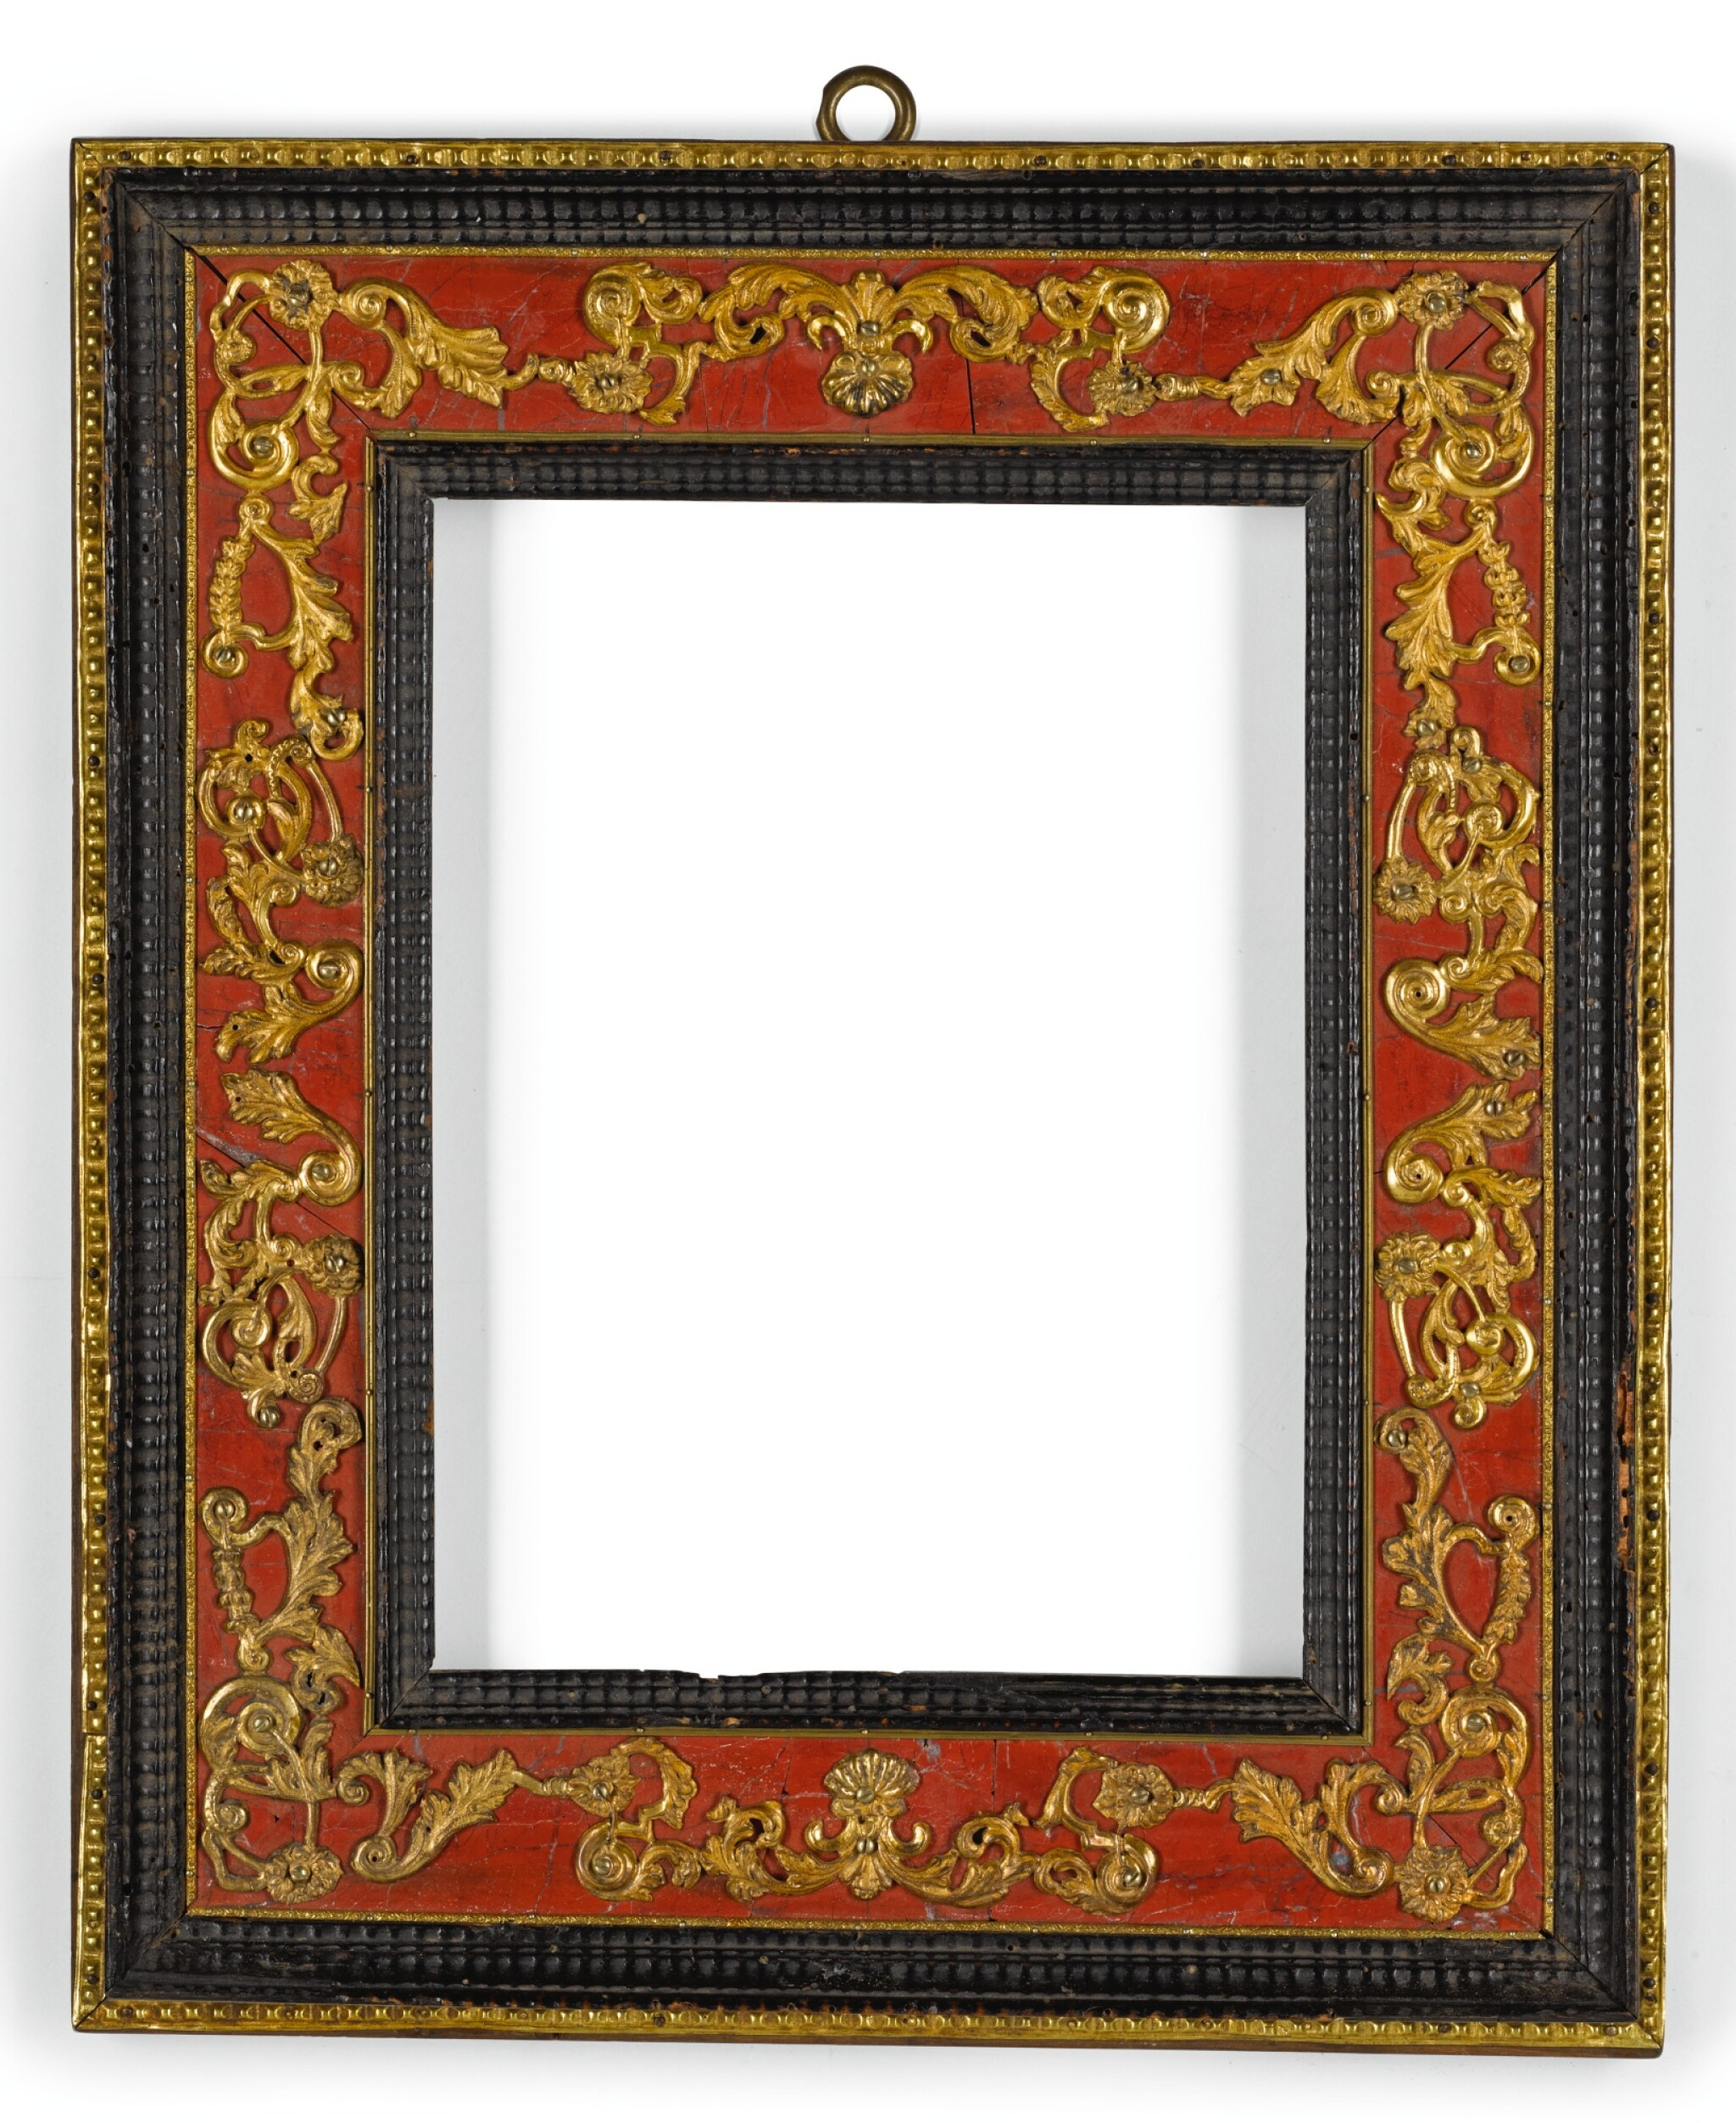 View full screen - View 1 of Lot 82. AN ITALIAN GILT-BRASS MOUNTED AND ROSSO ANTICO MARBLE PARCEL-GILT EBONY FRAME EARLY 18TH CENTURY.